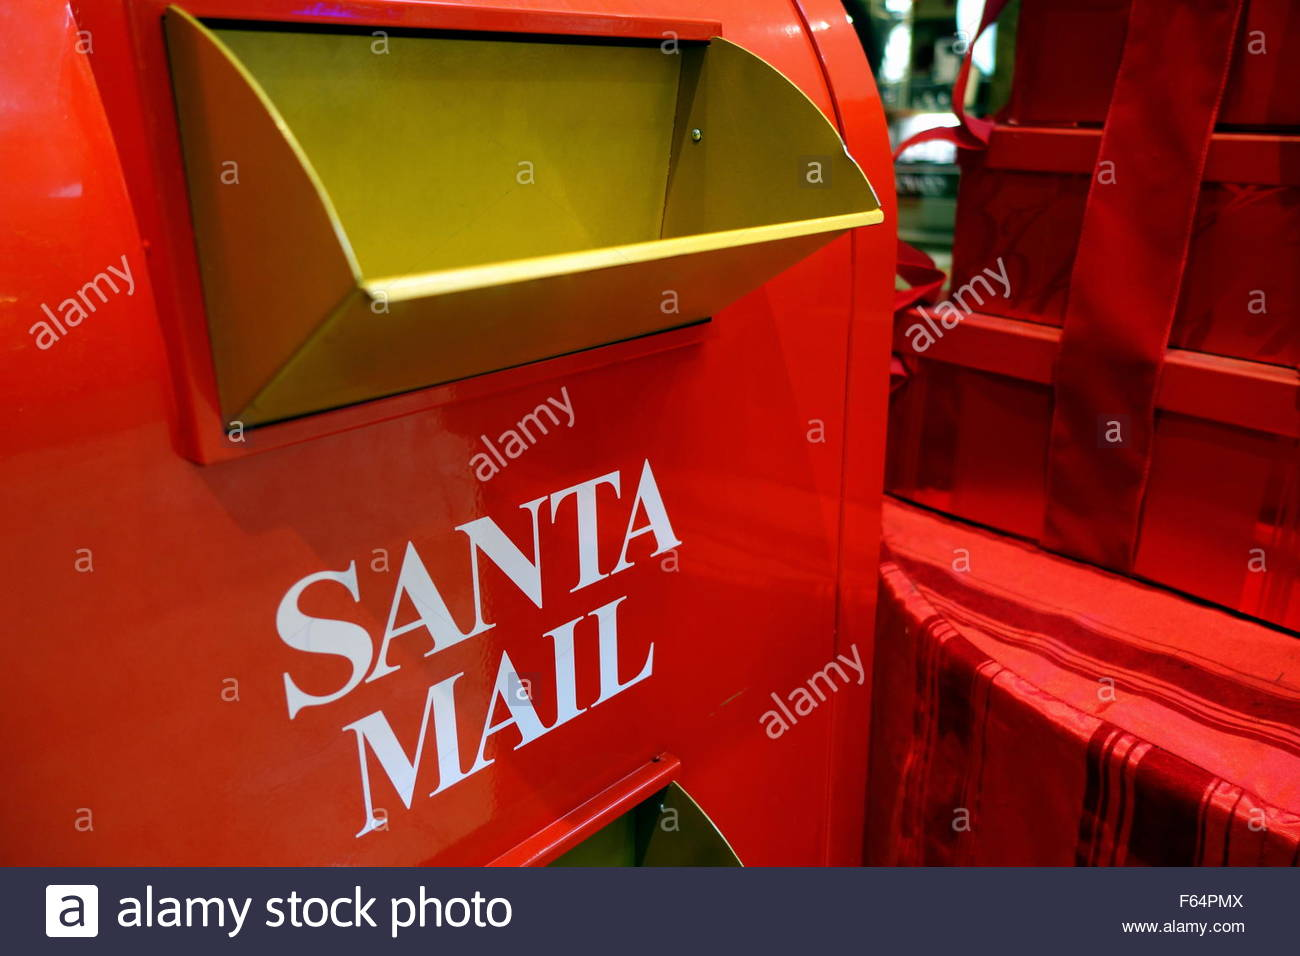 Santa-mail Stockbild